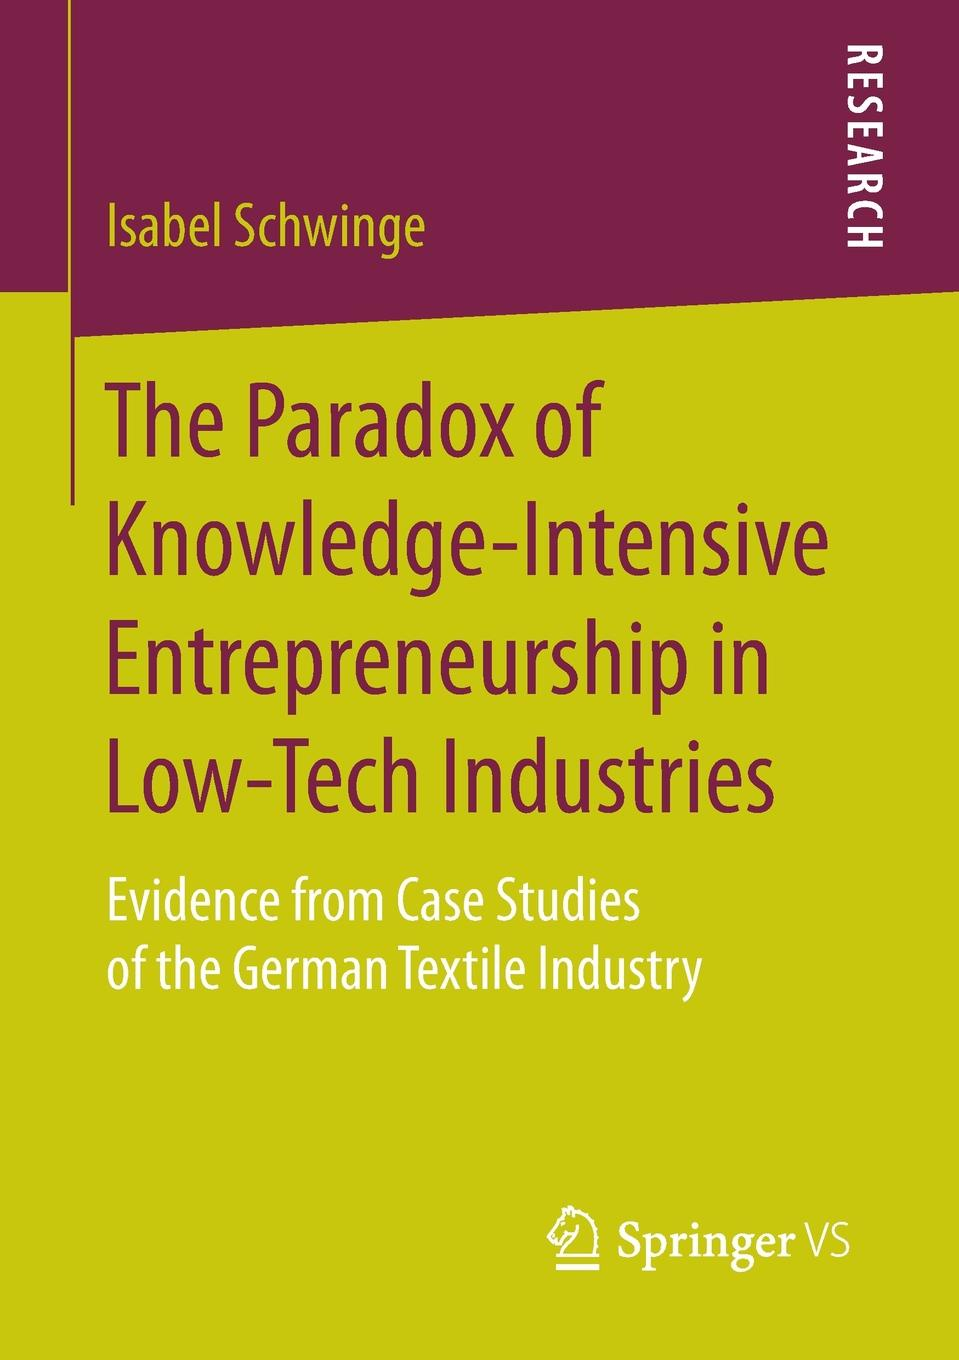 Isabel Schwinge The Paradox of Knowledge-Intensive Entrepreneurship in Low-Tech Industries. Evidence from Case Studies of the German Textile Industry douglas n walton ethics of withdrawal of life support systems case studies in decision making in intensive care